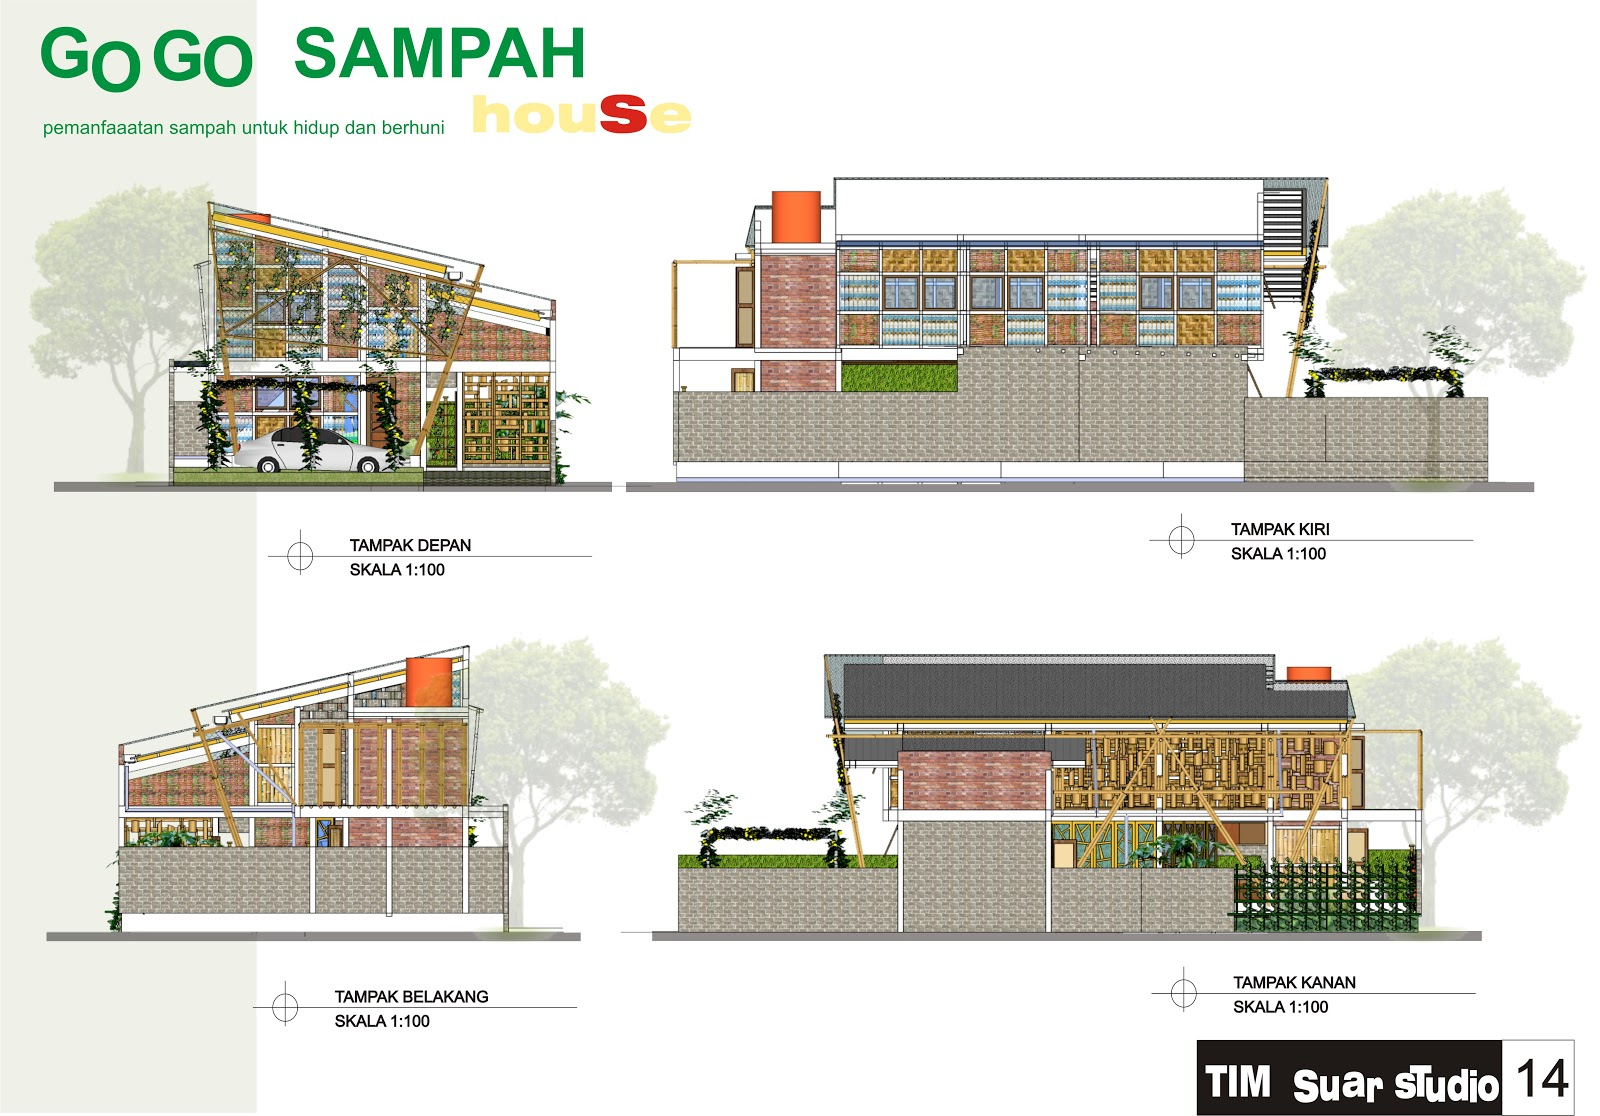 House design competition - Pemenang Eco House Design Competition